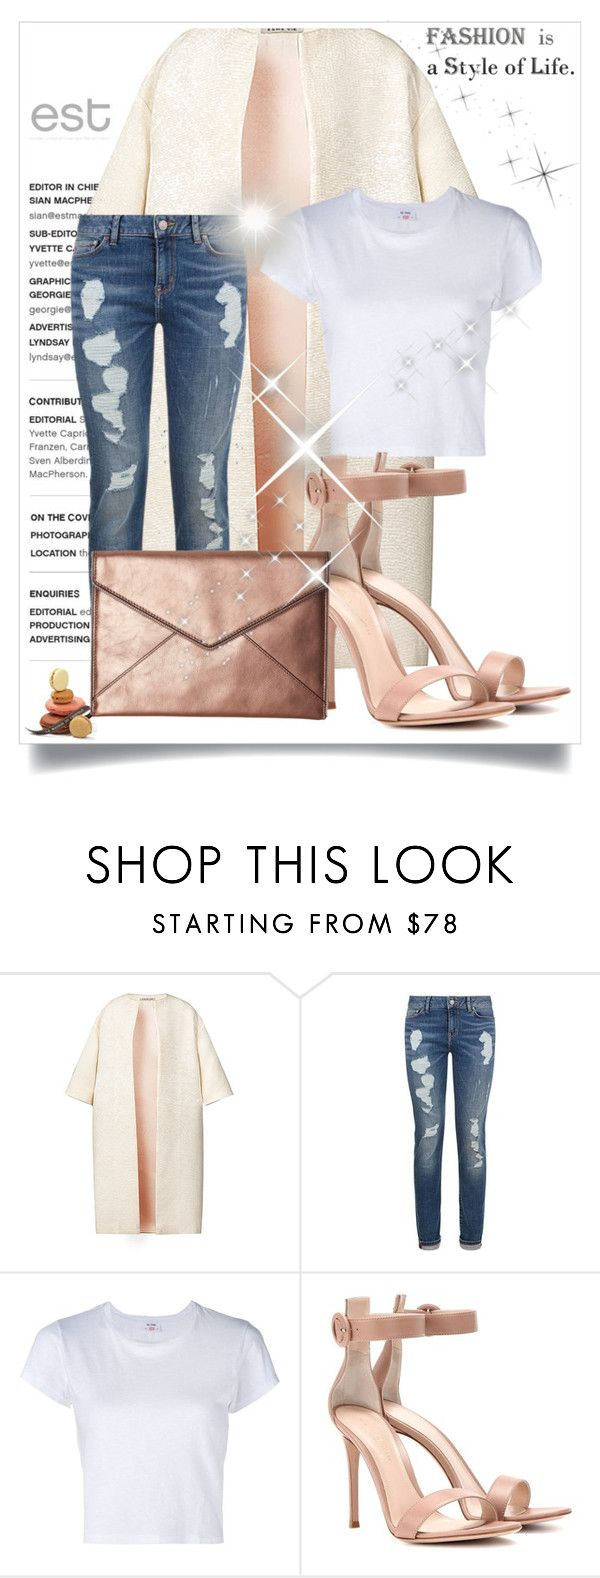 """Sem título #3441"" by mr-1 on Polyvore featuring moda, Esme Vie, Tommy Hilfiger, RE/DONE, Gianvito Rossi e Rebecca Minkoff"